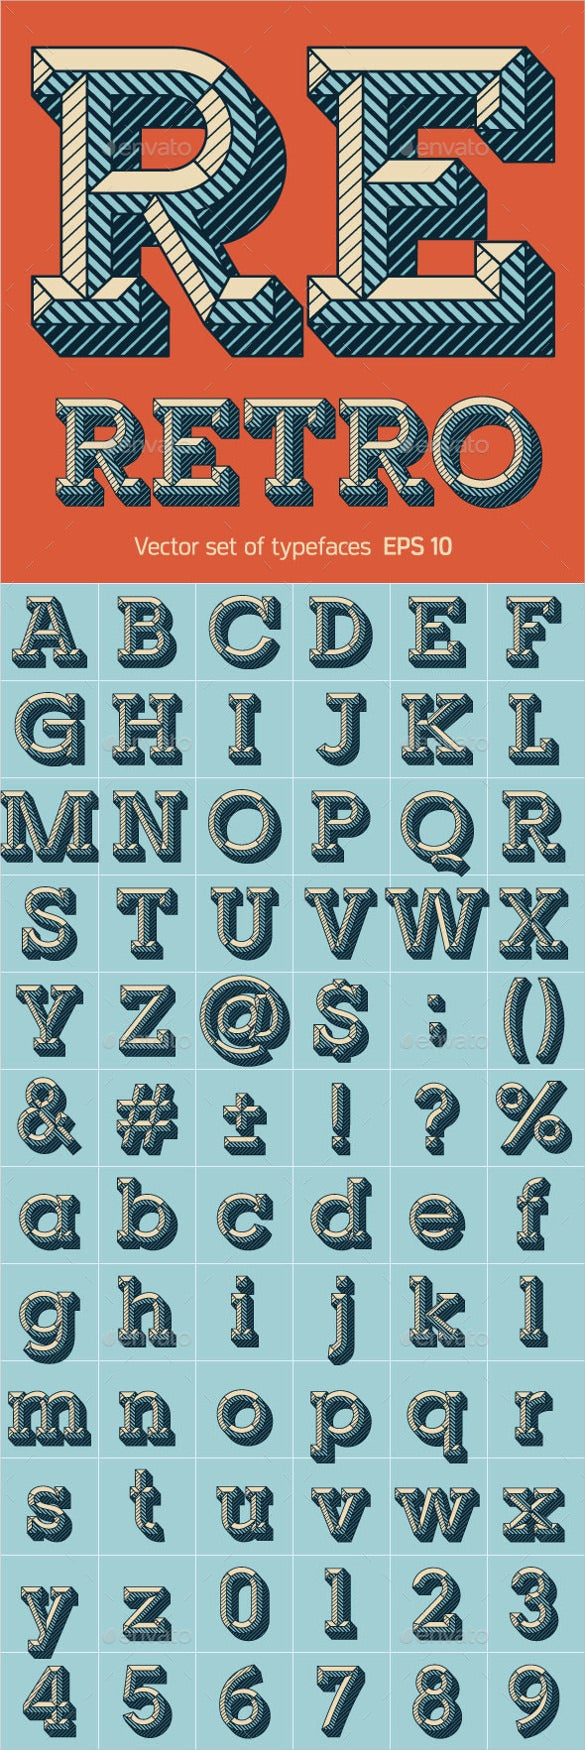 font set of engraved letters template download